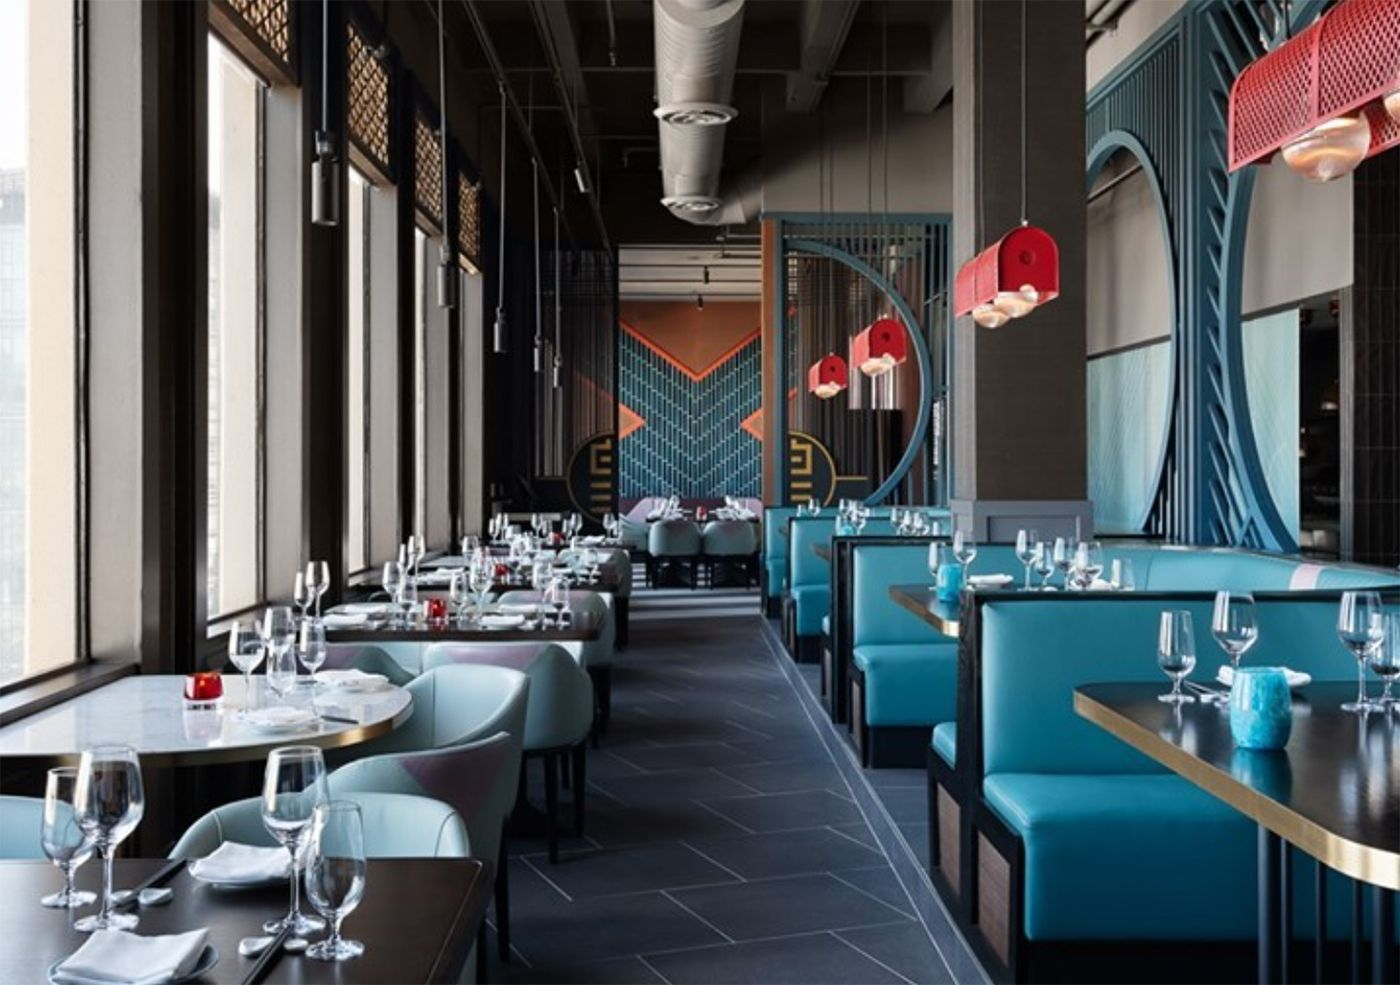 Empress by Boon to Debut Next Week In the Storied Empress of China Space In SF's Chinatown